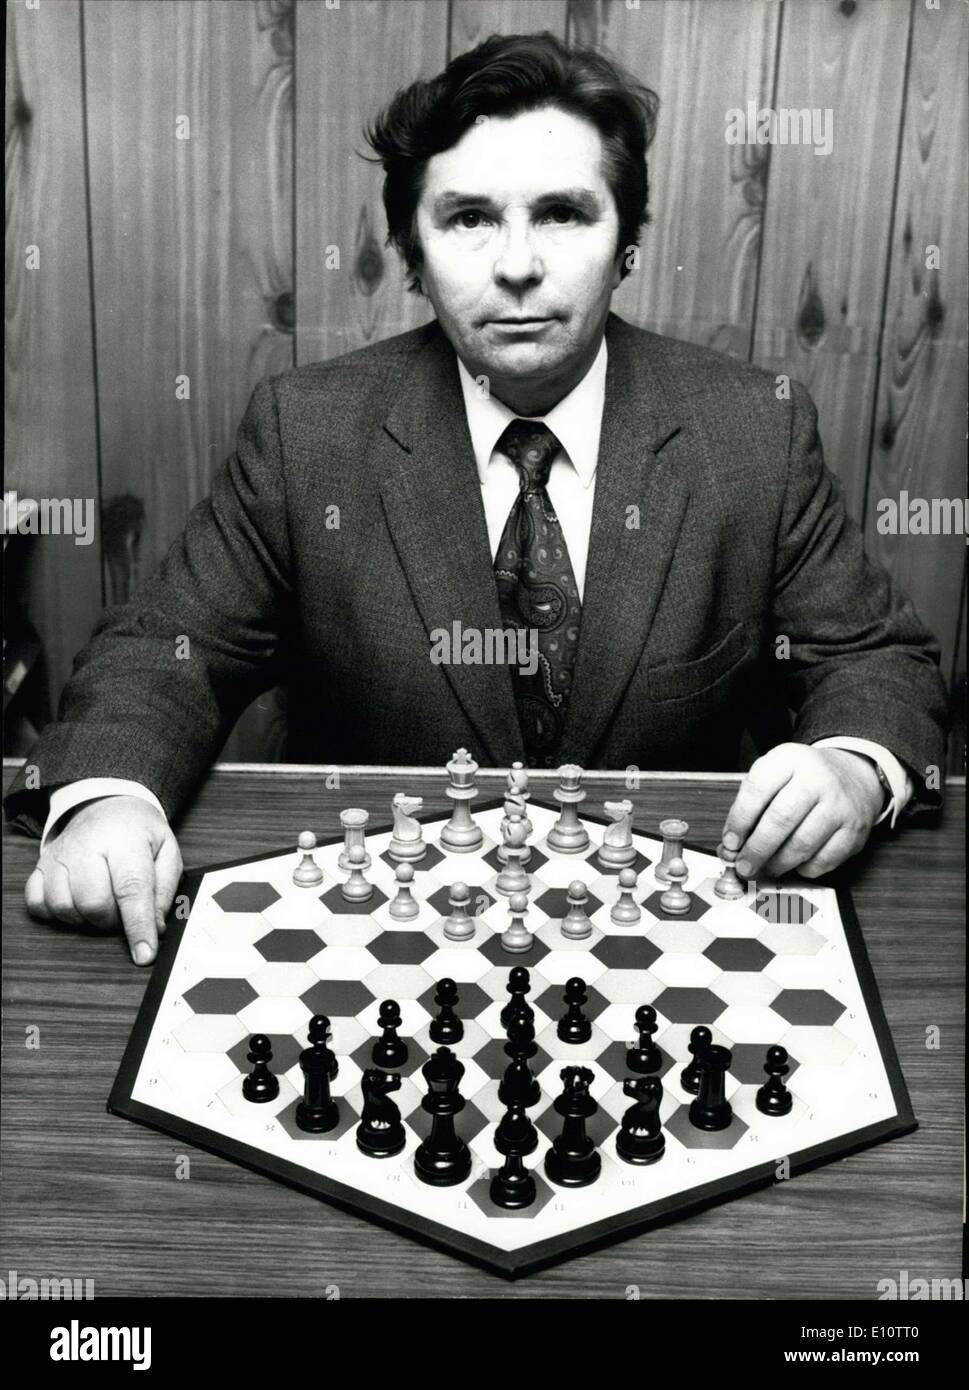 Feb. 05, 1974 - A New Version of The Game of Chess On An Hexagonal Board Mr. Wladyslav Glinski, a Polish-born Briton, has ate - Stock Image